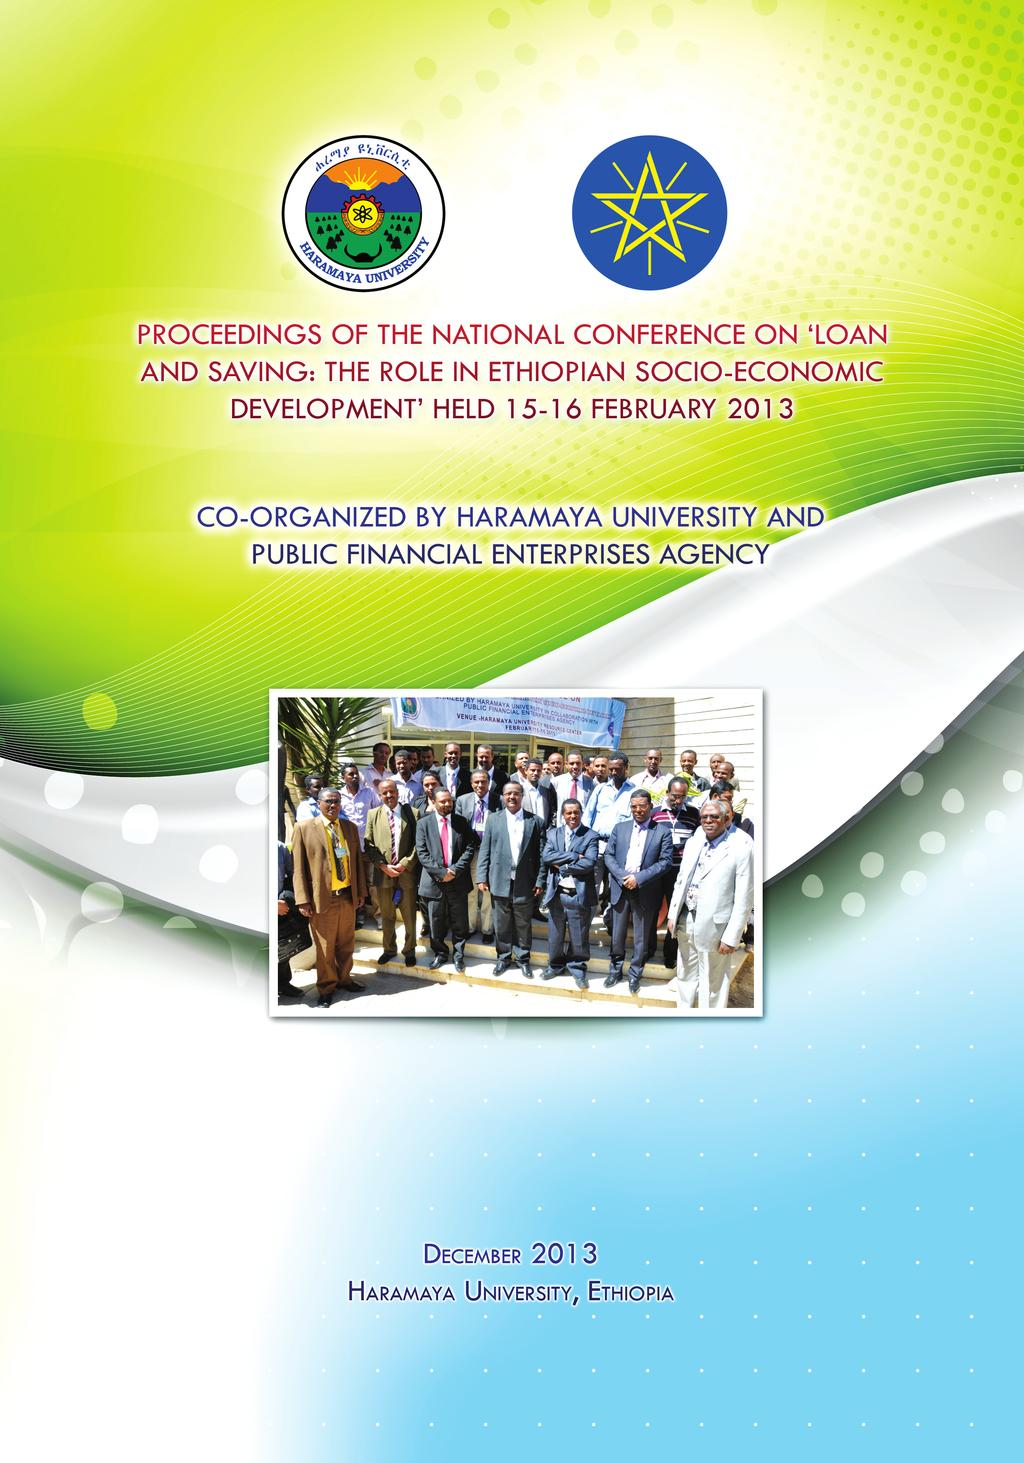 A CONFERENCE CO-ORGANIZED BY HARAMAYA UNIVERSITY AND PUBLIC